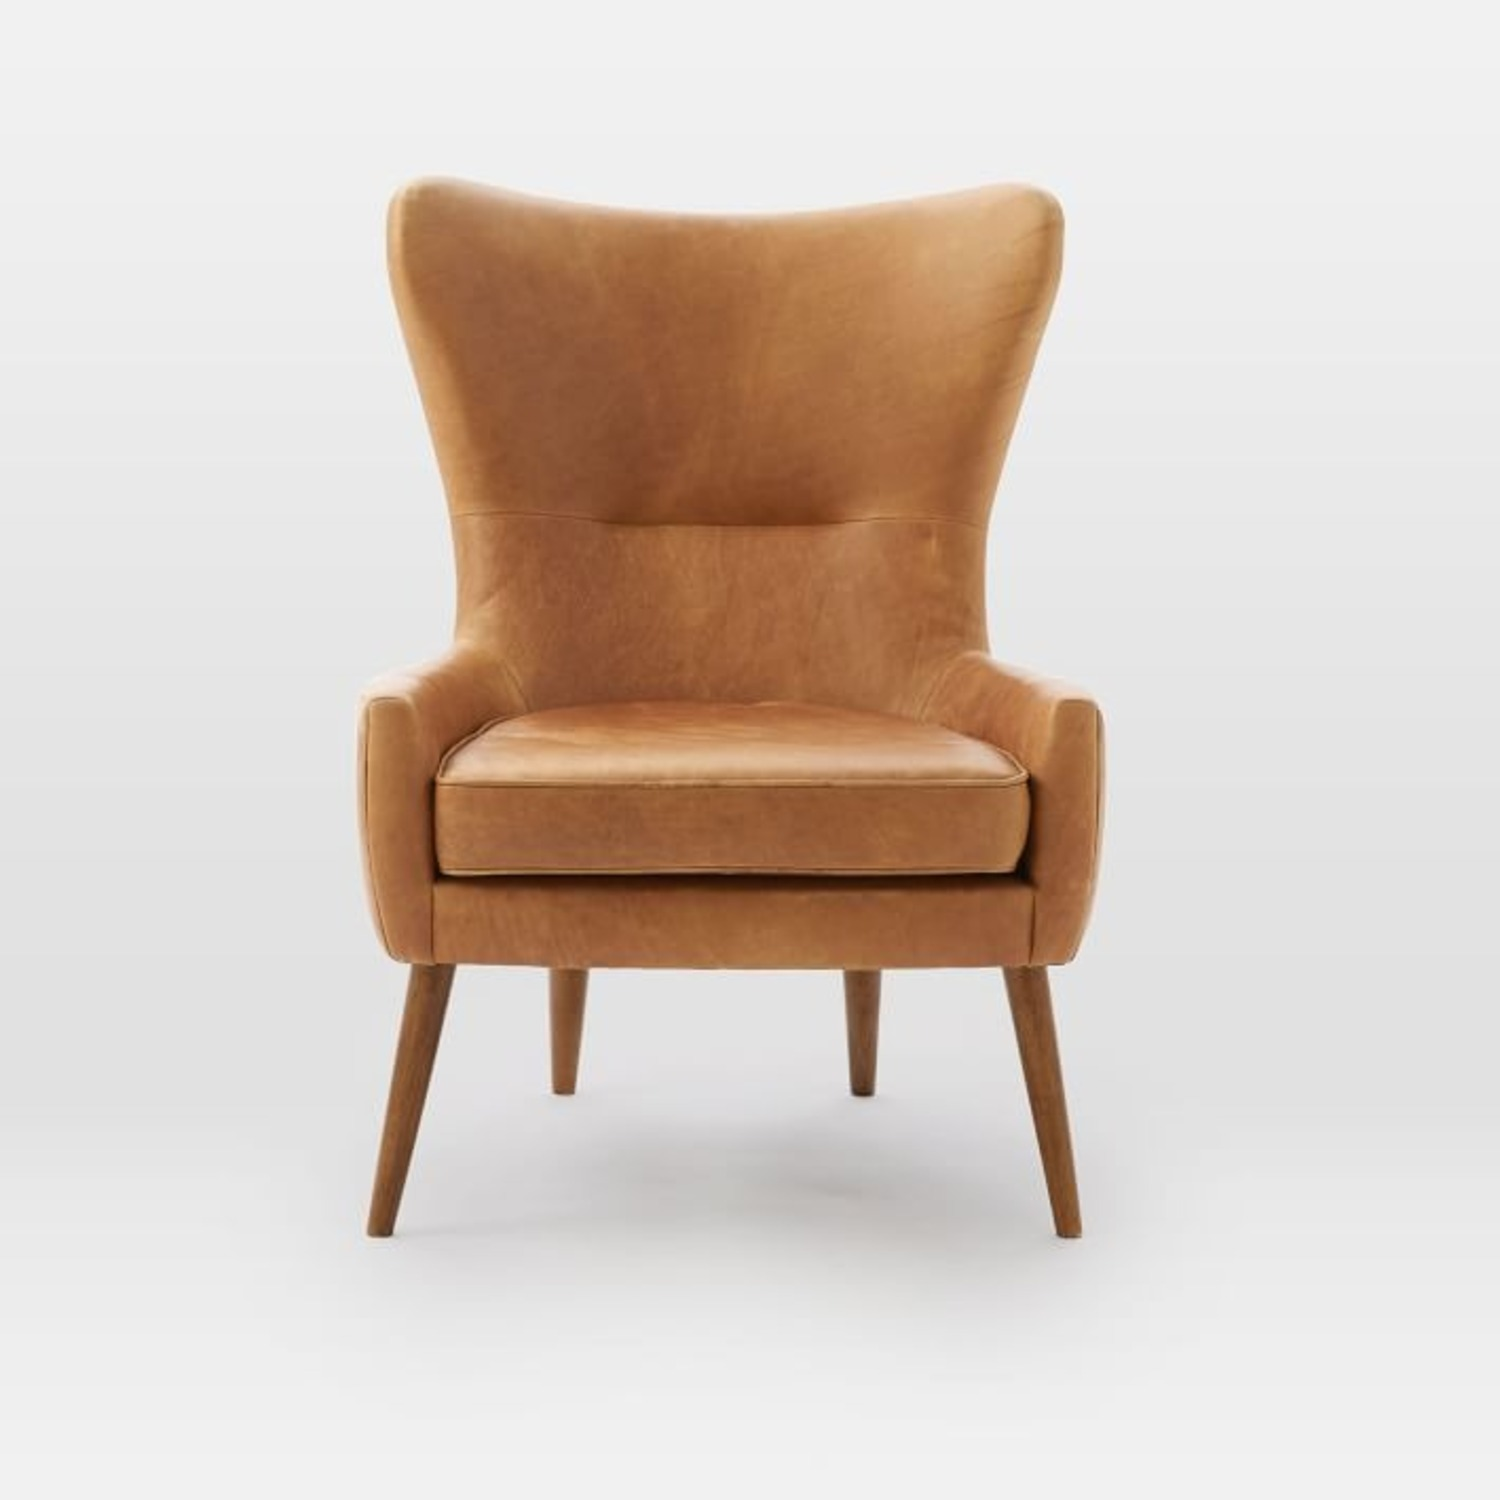 West Elm Erik Wing Chair - image-1